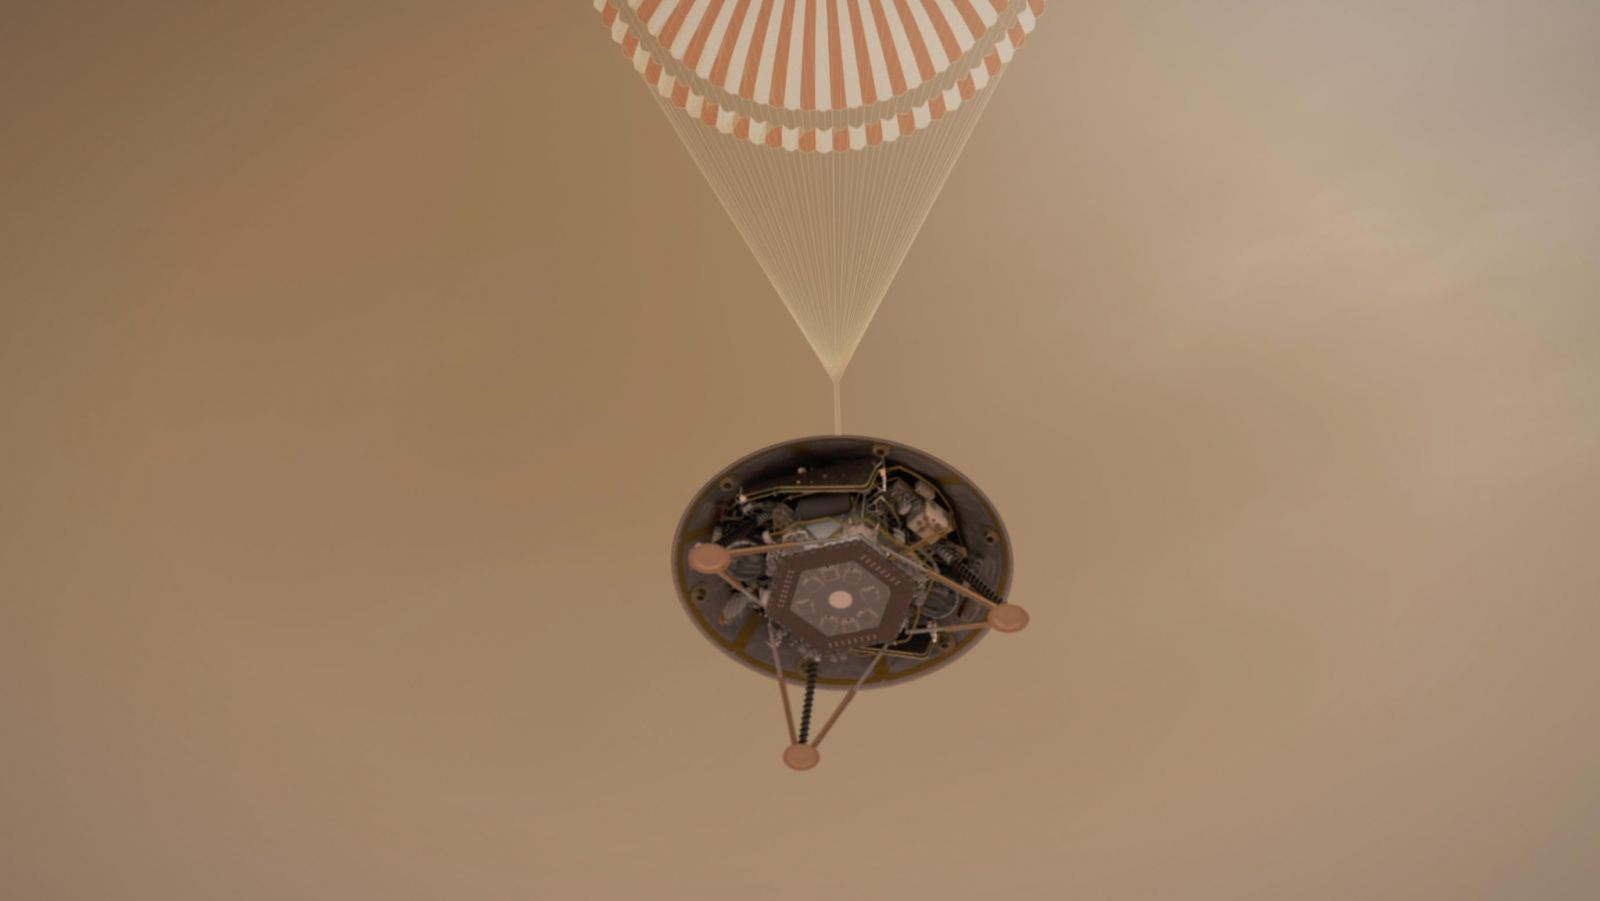 NASA mission managers successfully landed the InSight lander on Mars at the Elysium Planitia region at 3 p.m. ET (noon Pacific / 19:00 GMT) today, Monday, Nov. 26. Image Credit: NASA / JPL-Caltech